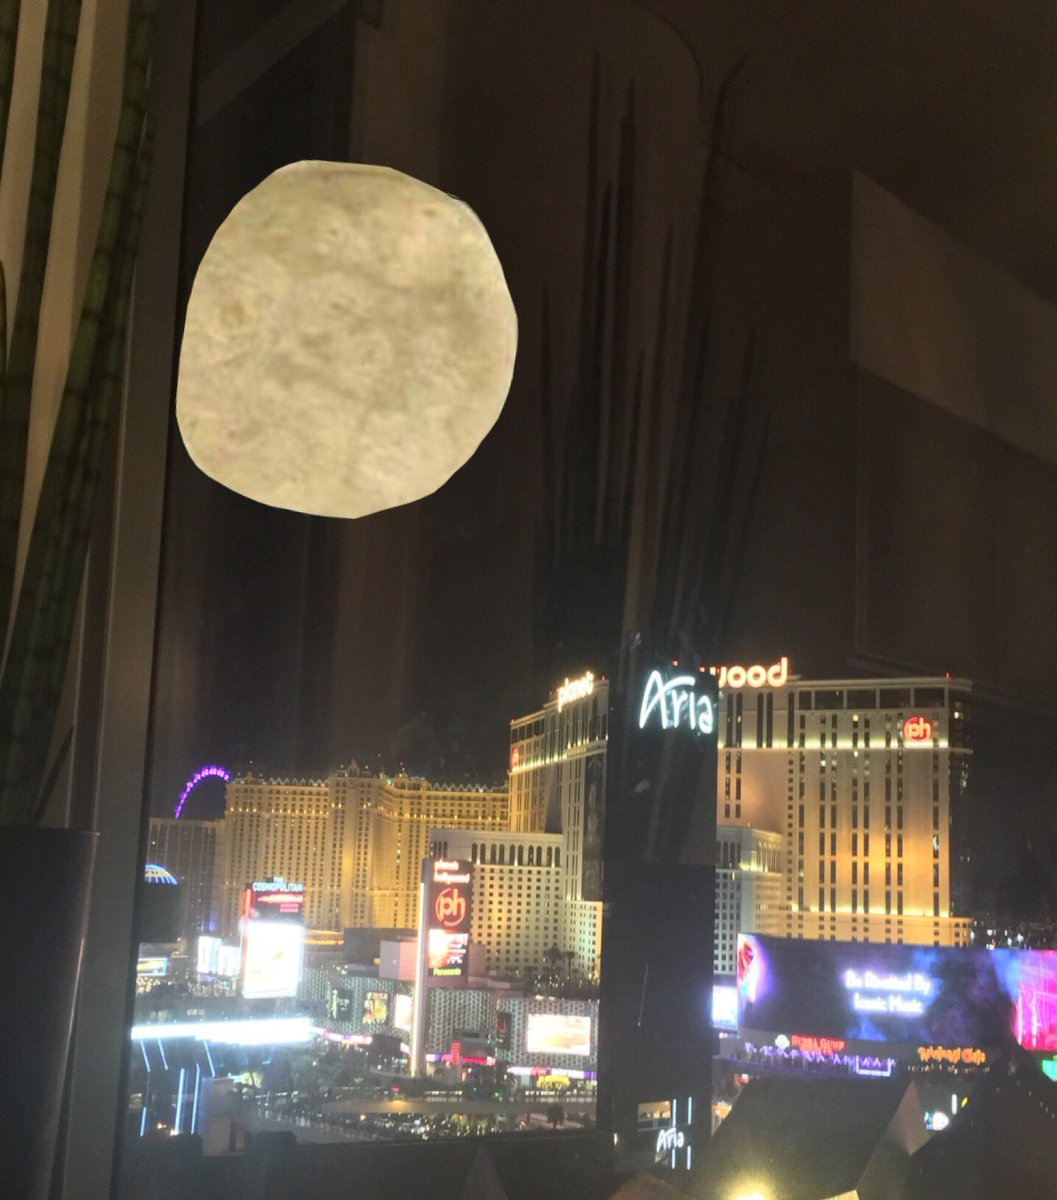 #Protip: if you can't see the #supermoon, put a tortilla on the window